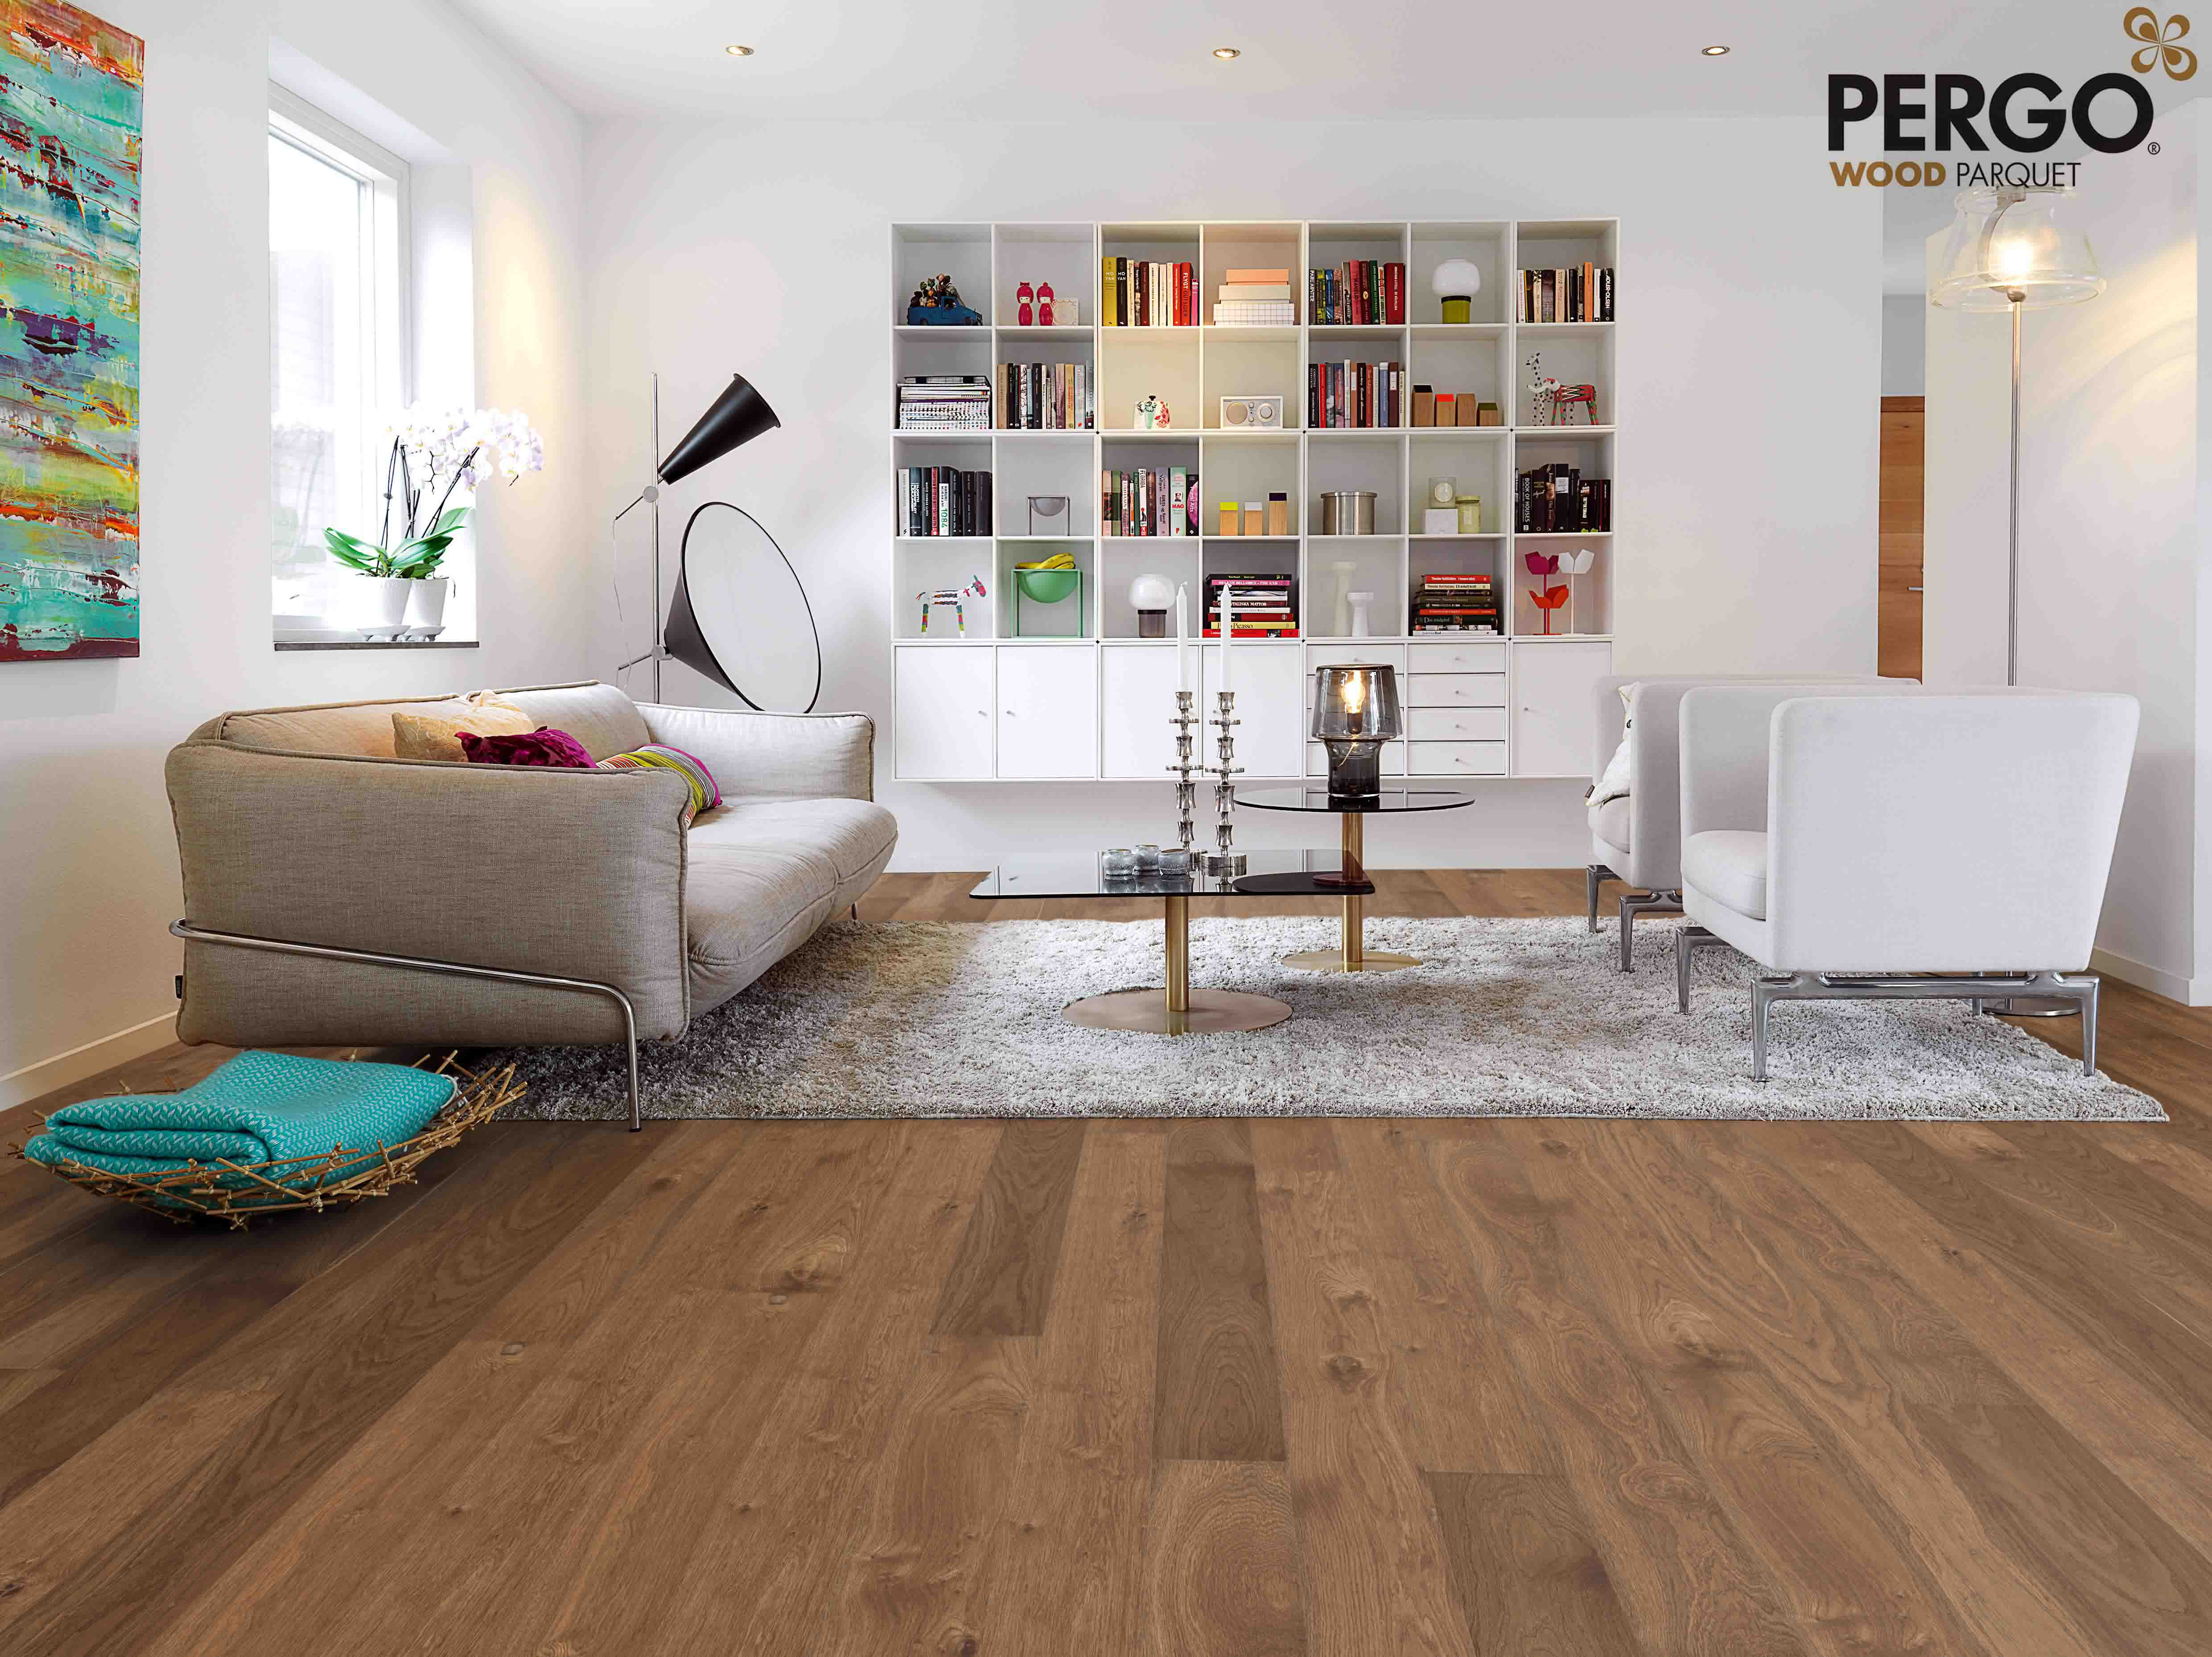 Step In Style On Pergo Wood Parquet Flooring